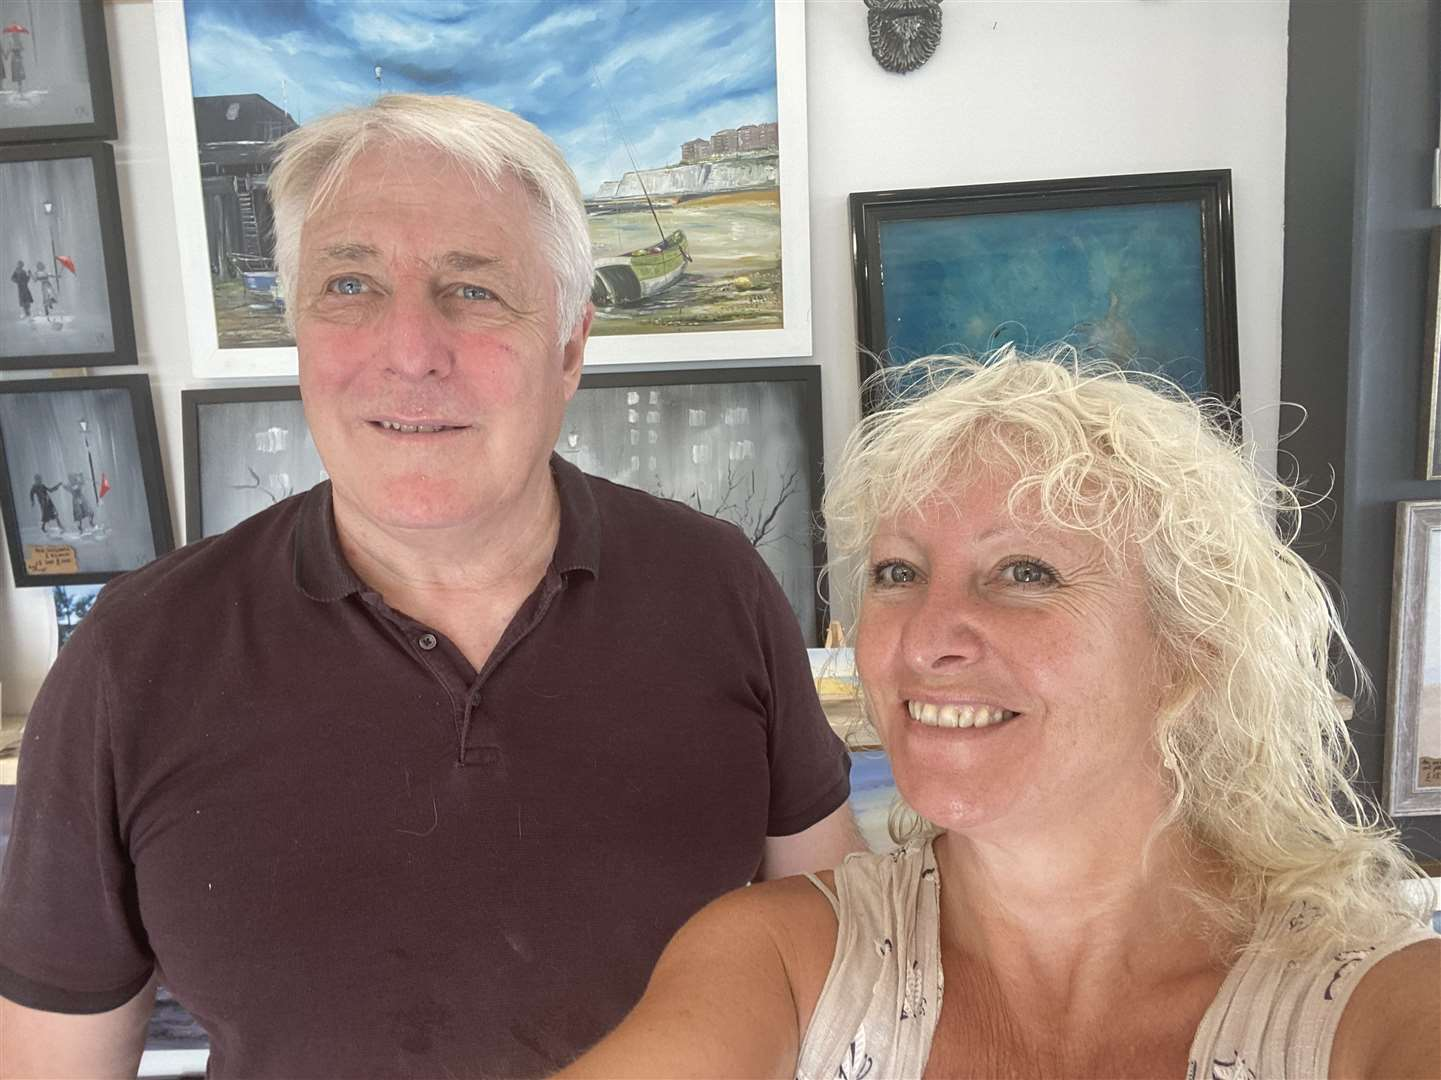 Little Art Gallery in Broadstairs, run by Vicki Griggs and Kevin Malone